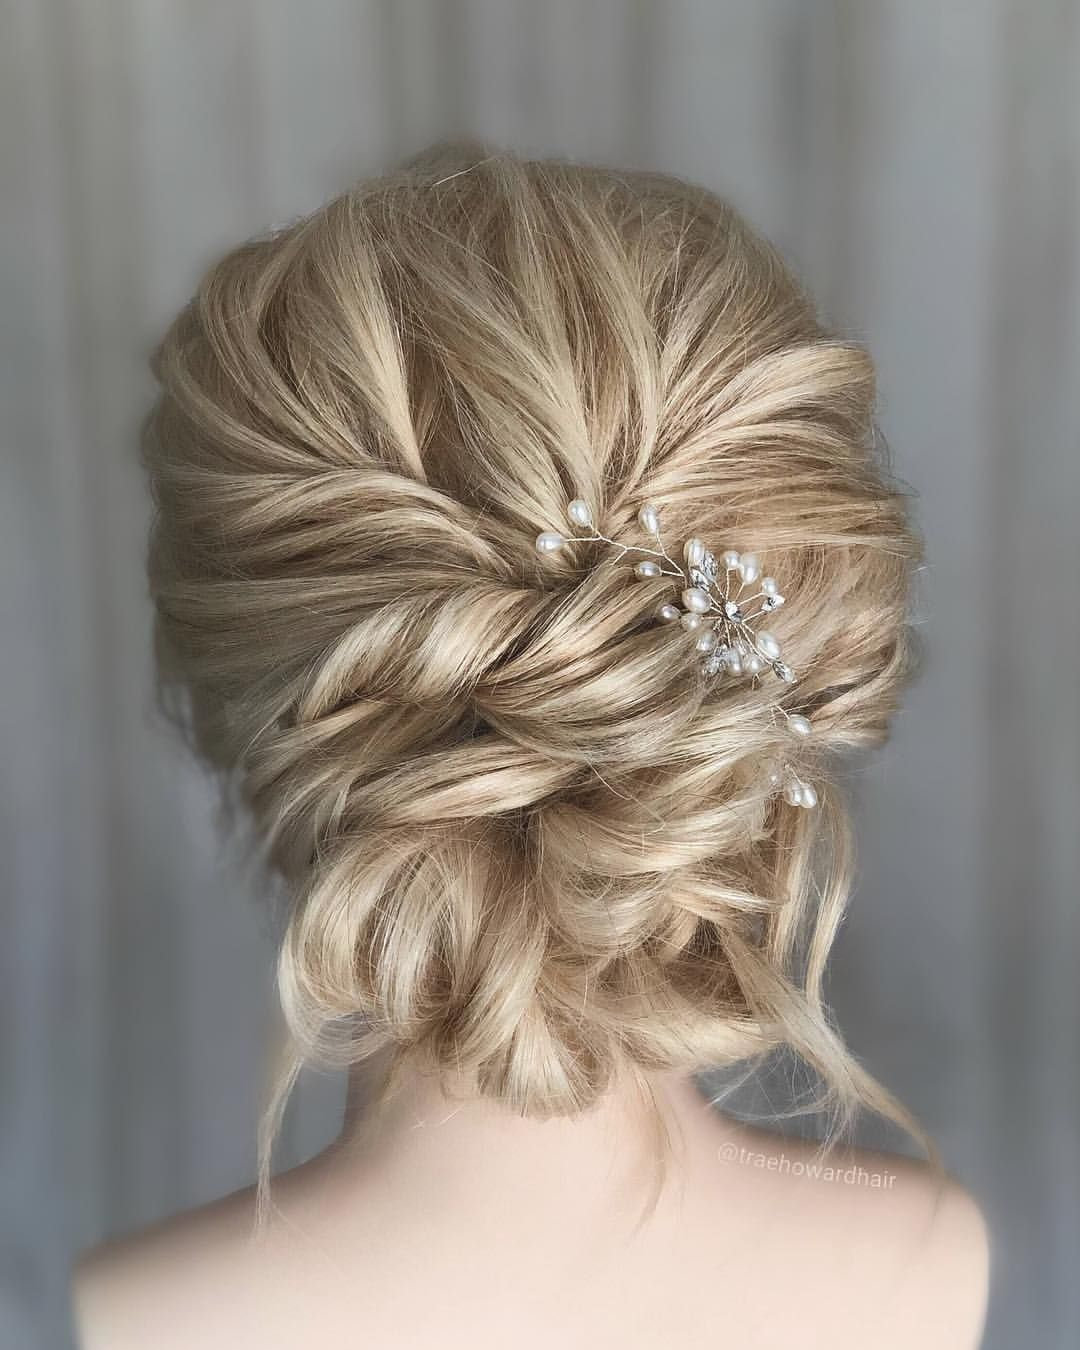 Wedding Hairstyle Nashville: Nashville Wedding Hairstylist